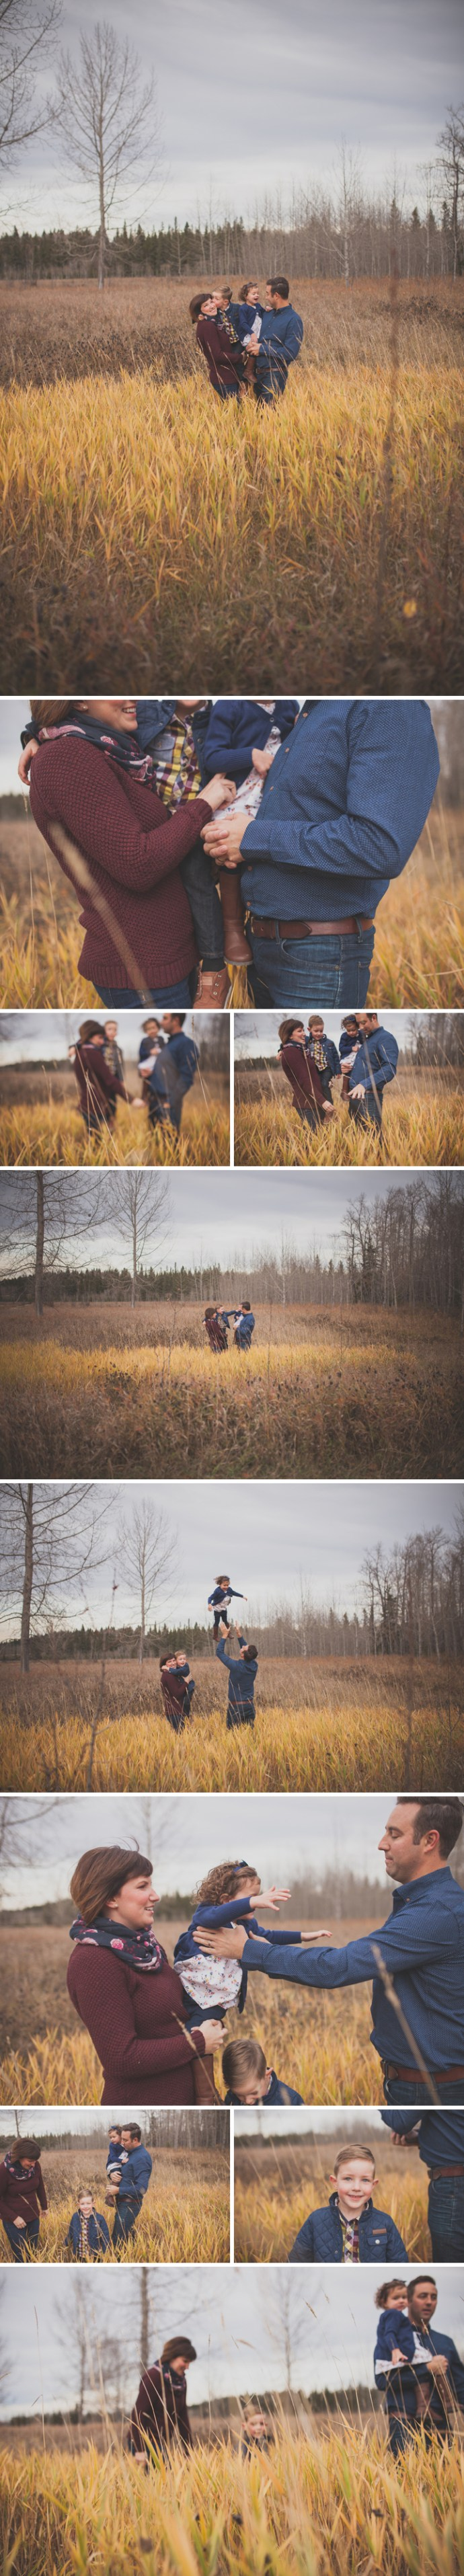 fall family photography | ©The Paper Deer Photography | thepaperdeer.ca